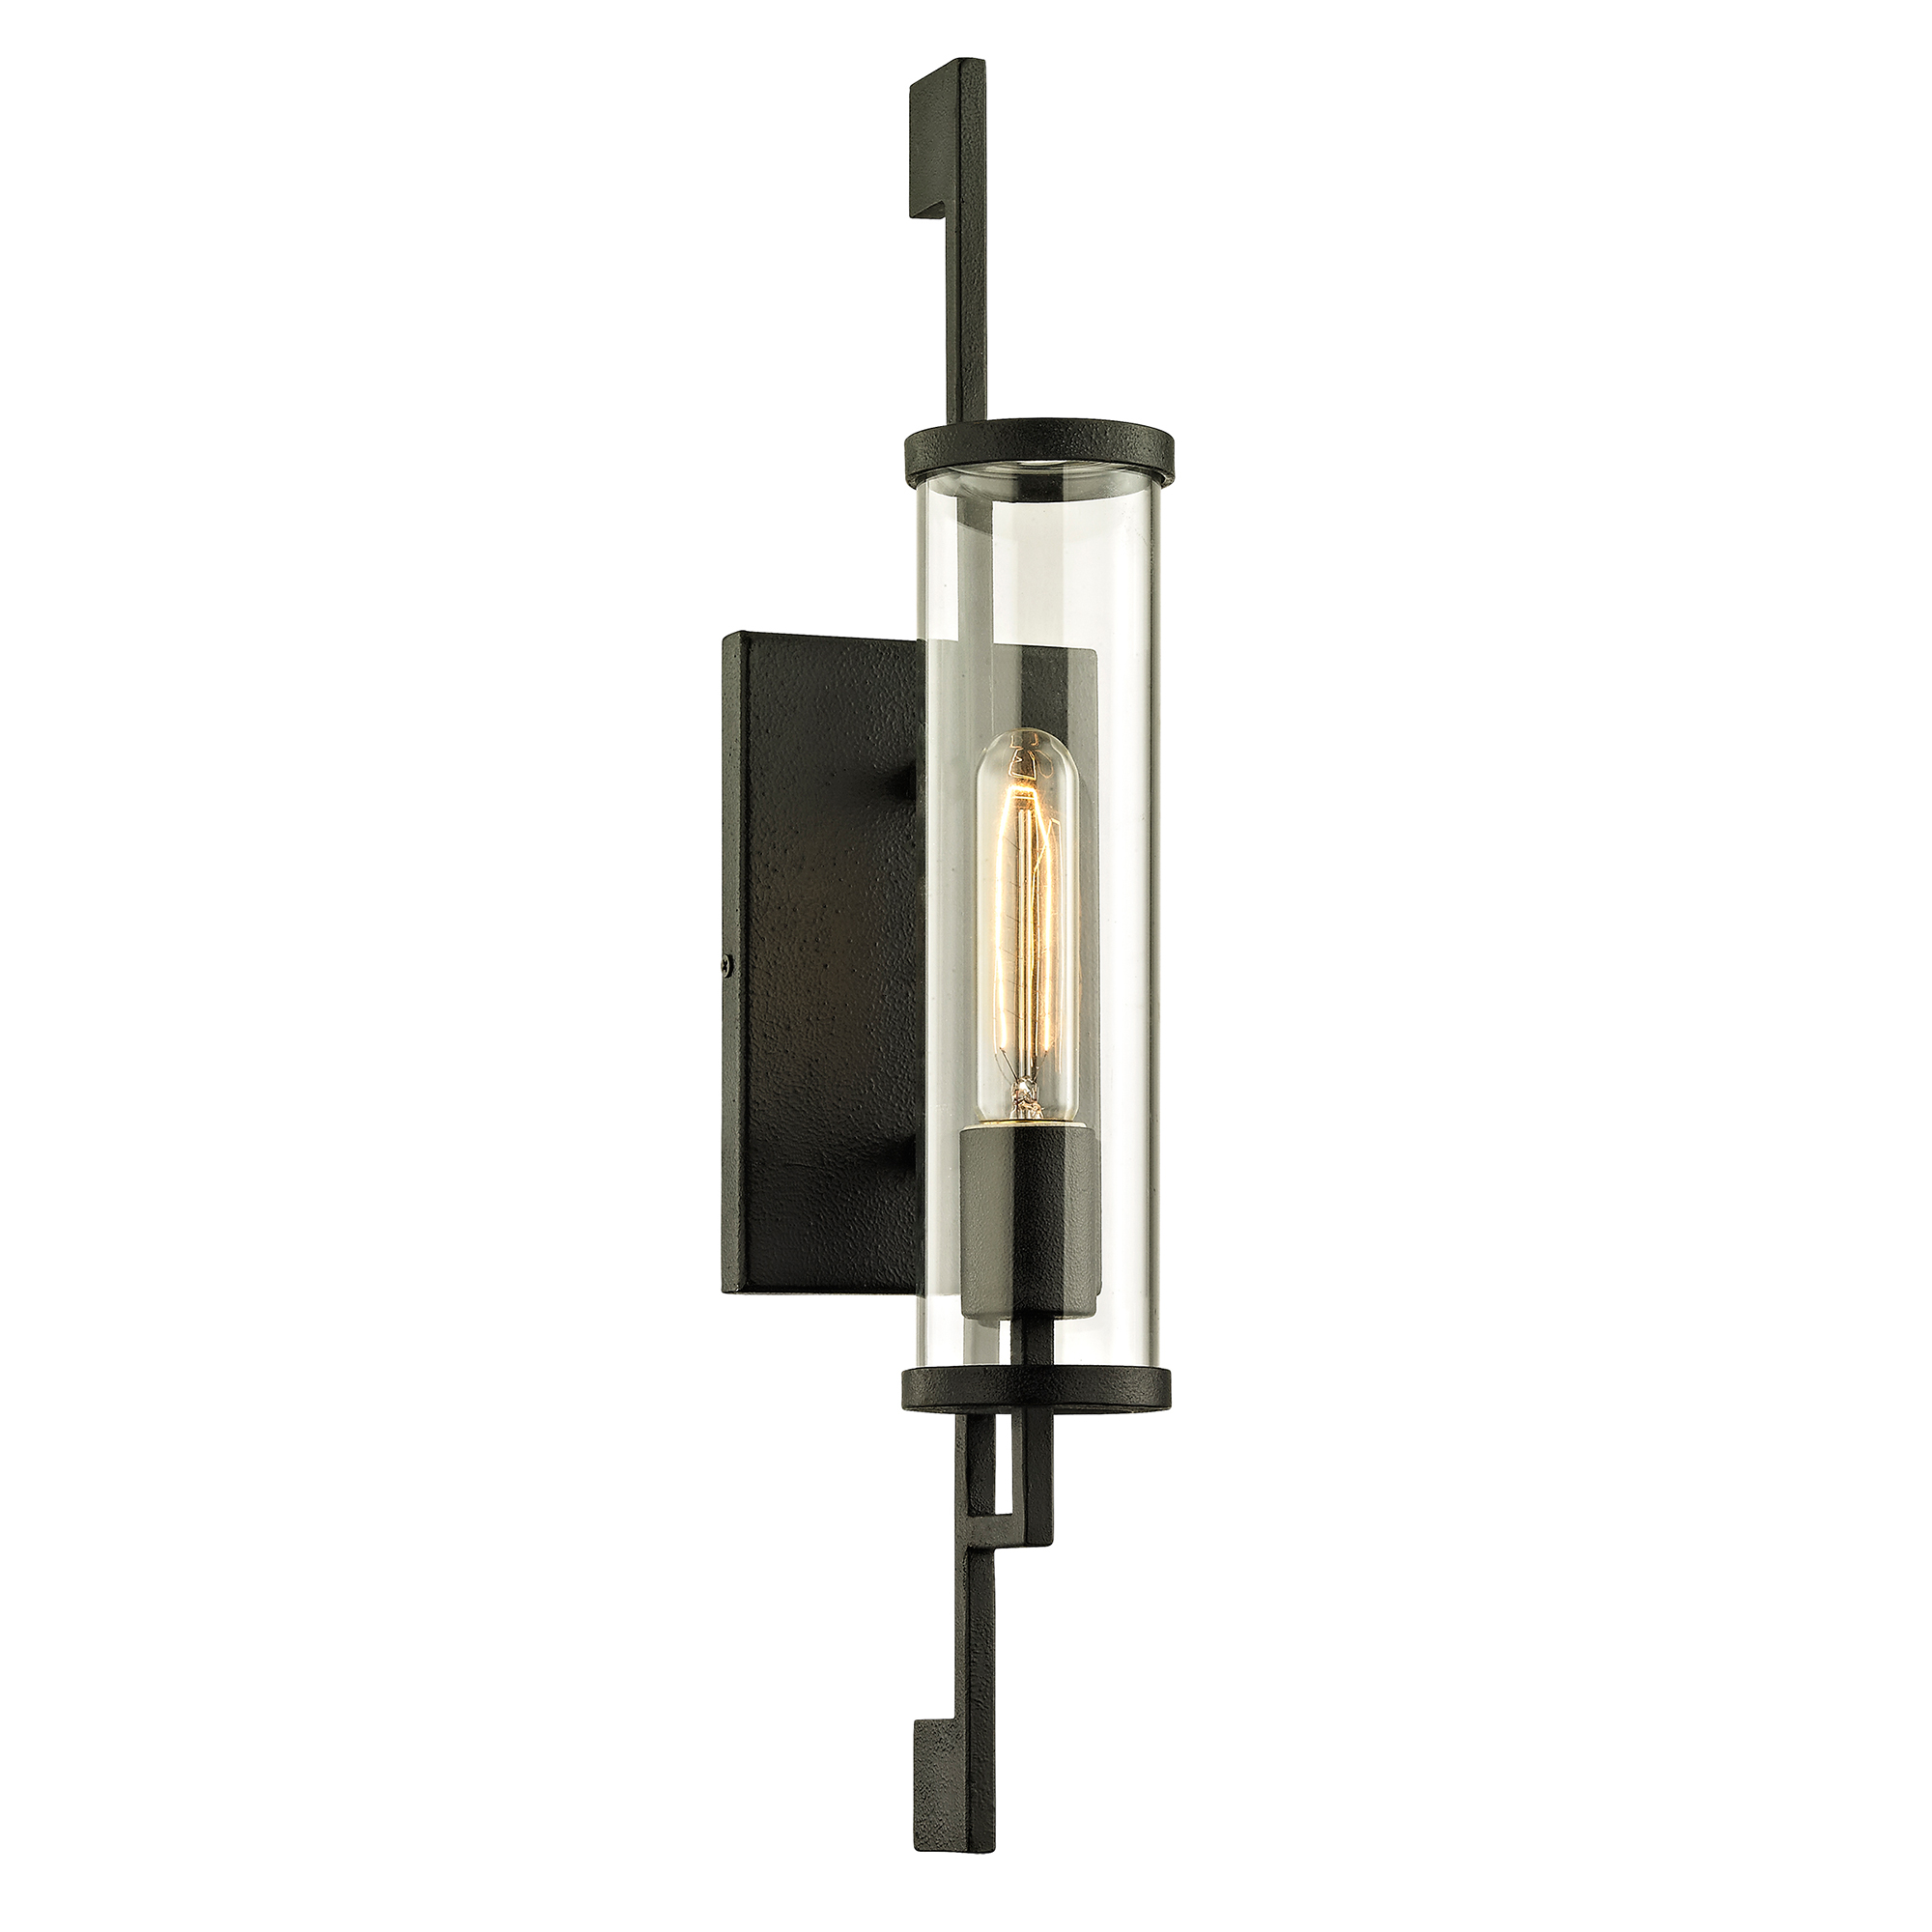 Troy Outdoor Lighting Fixtures Park slope outdoor wall light by troy lighting b6461 workwithnaturefo